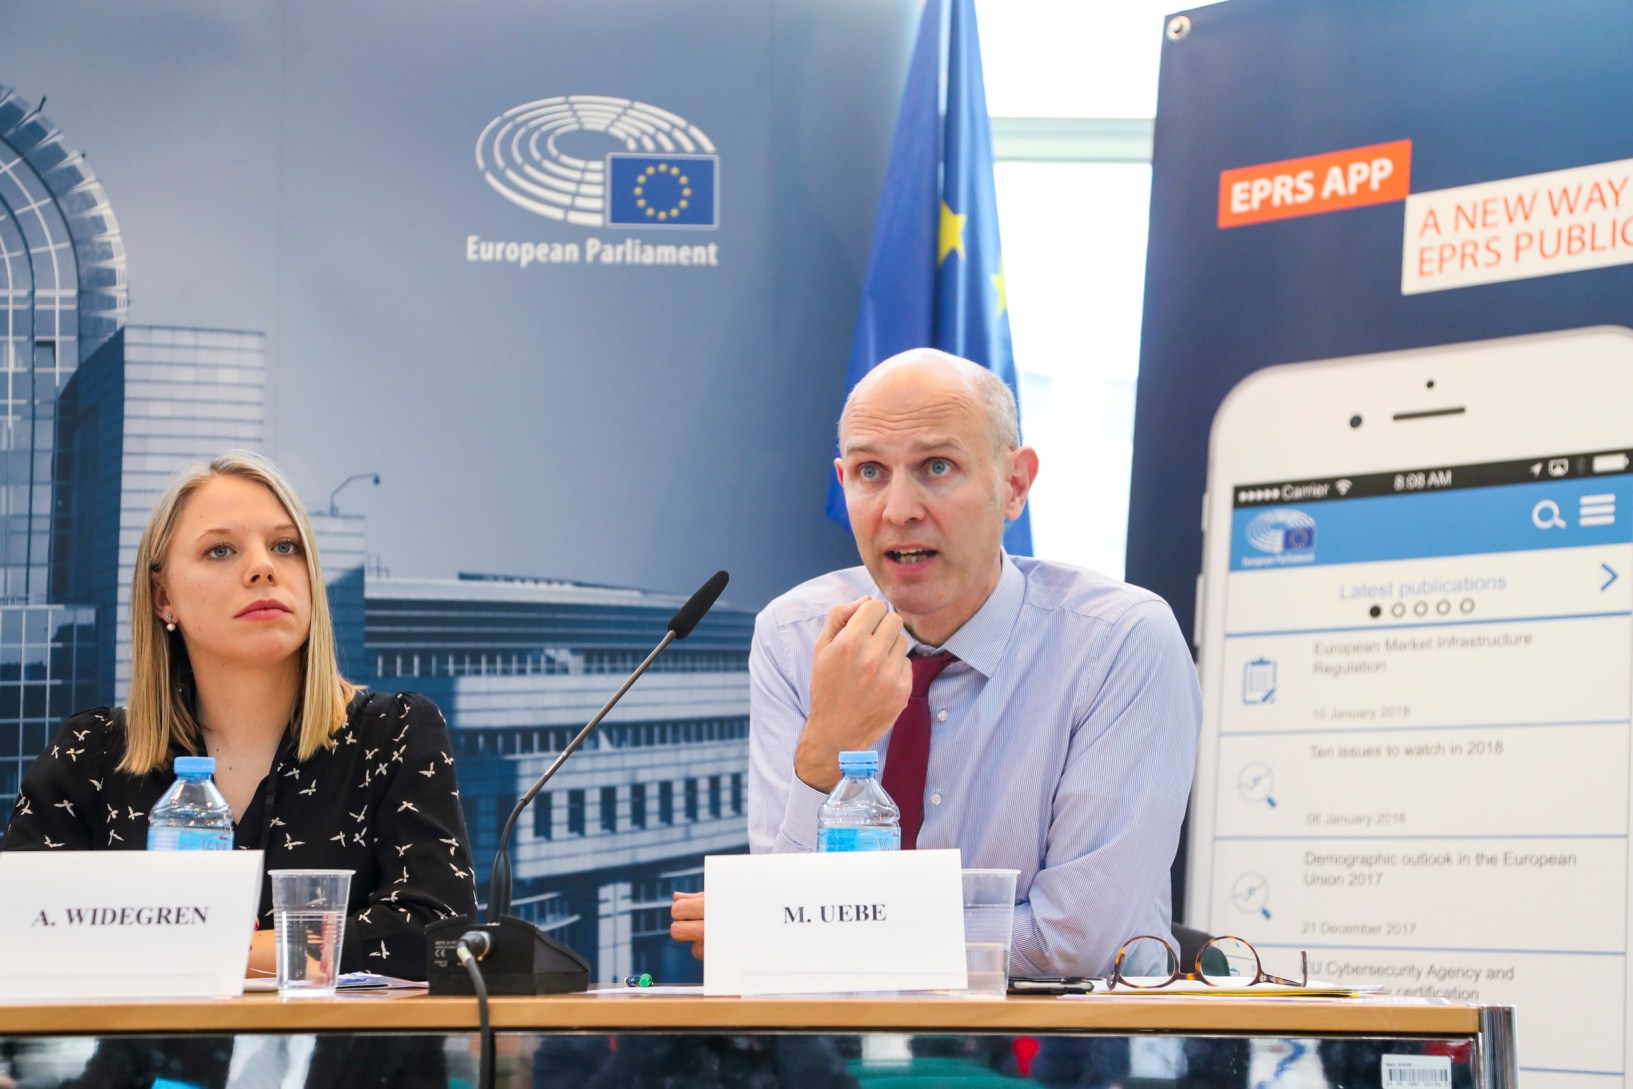 From Bratislava to Sibiu: Roadmap for the Future of Europe. Economic and Social Policies for Young People